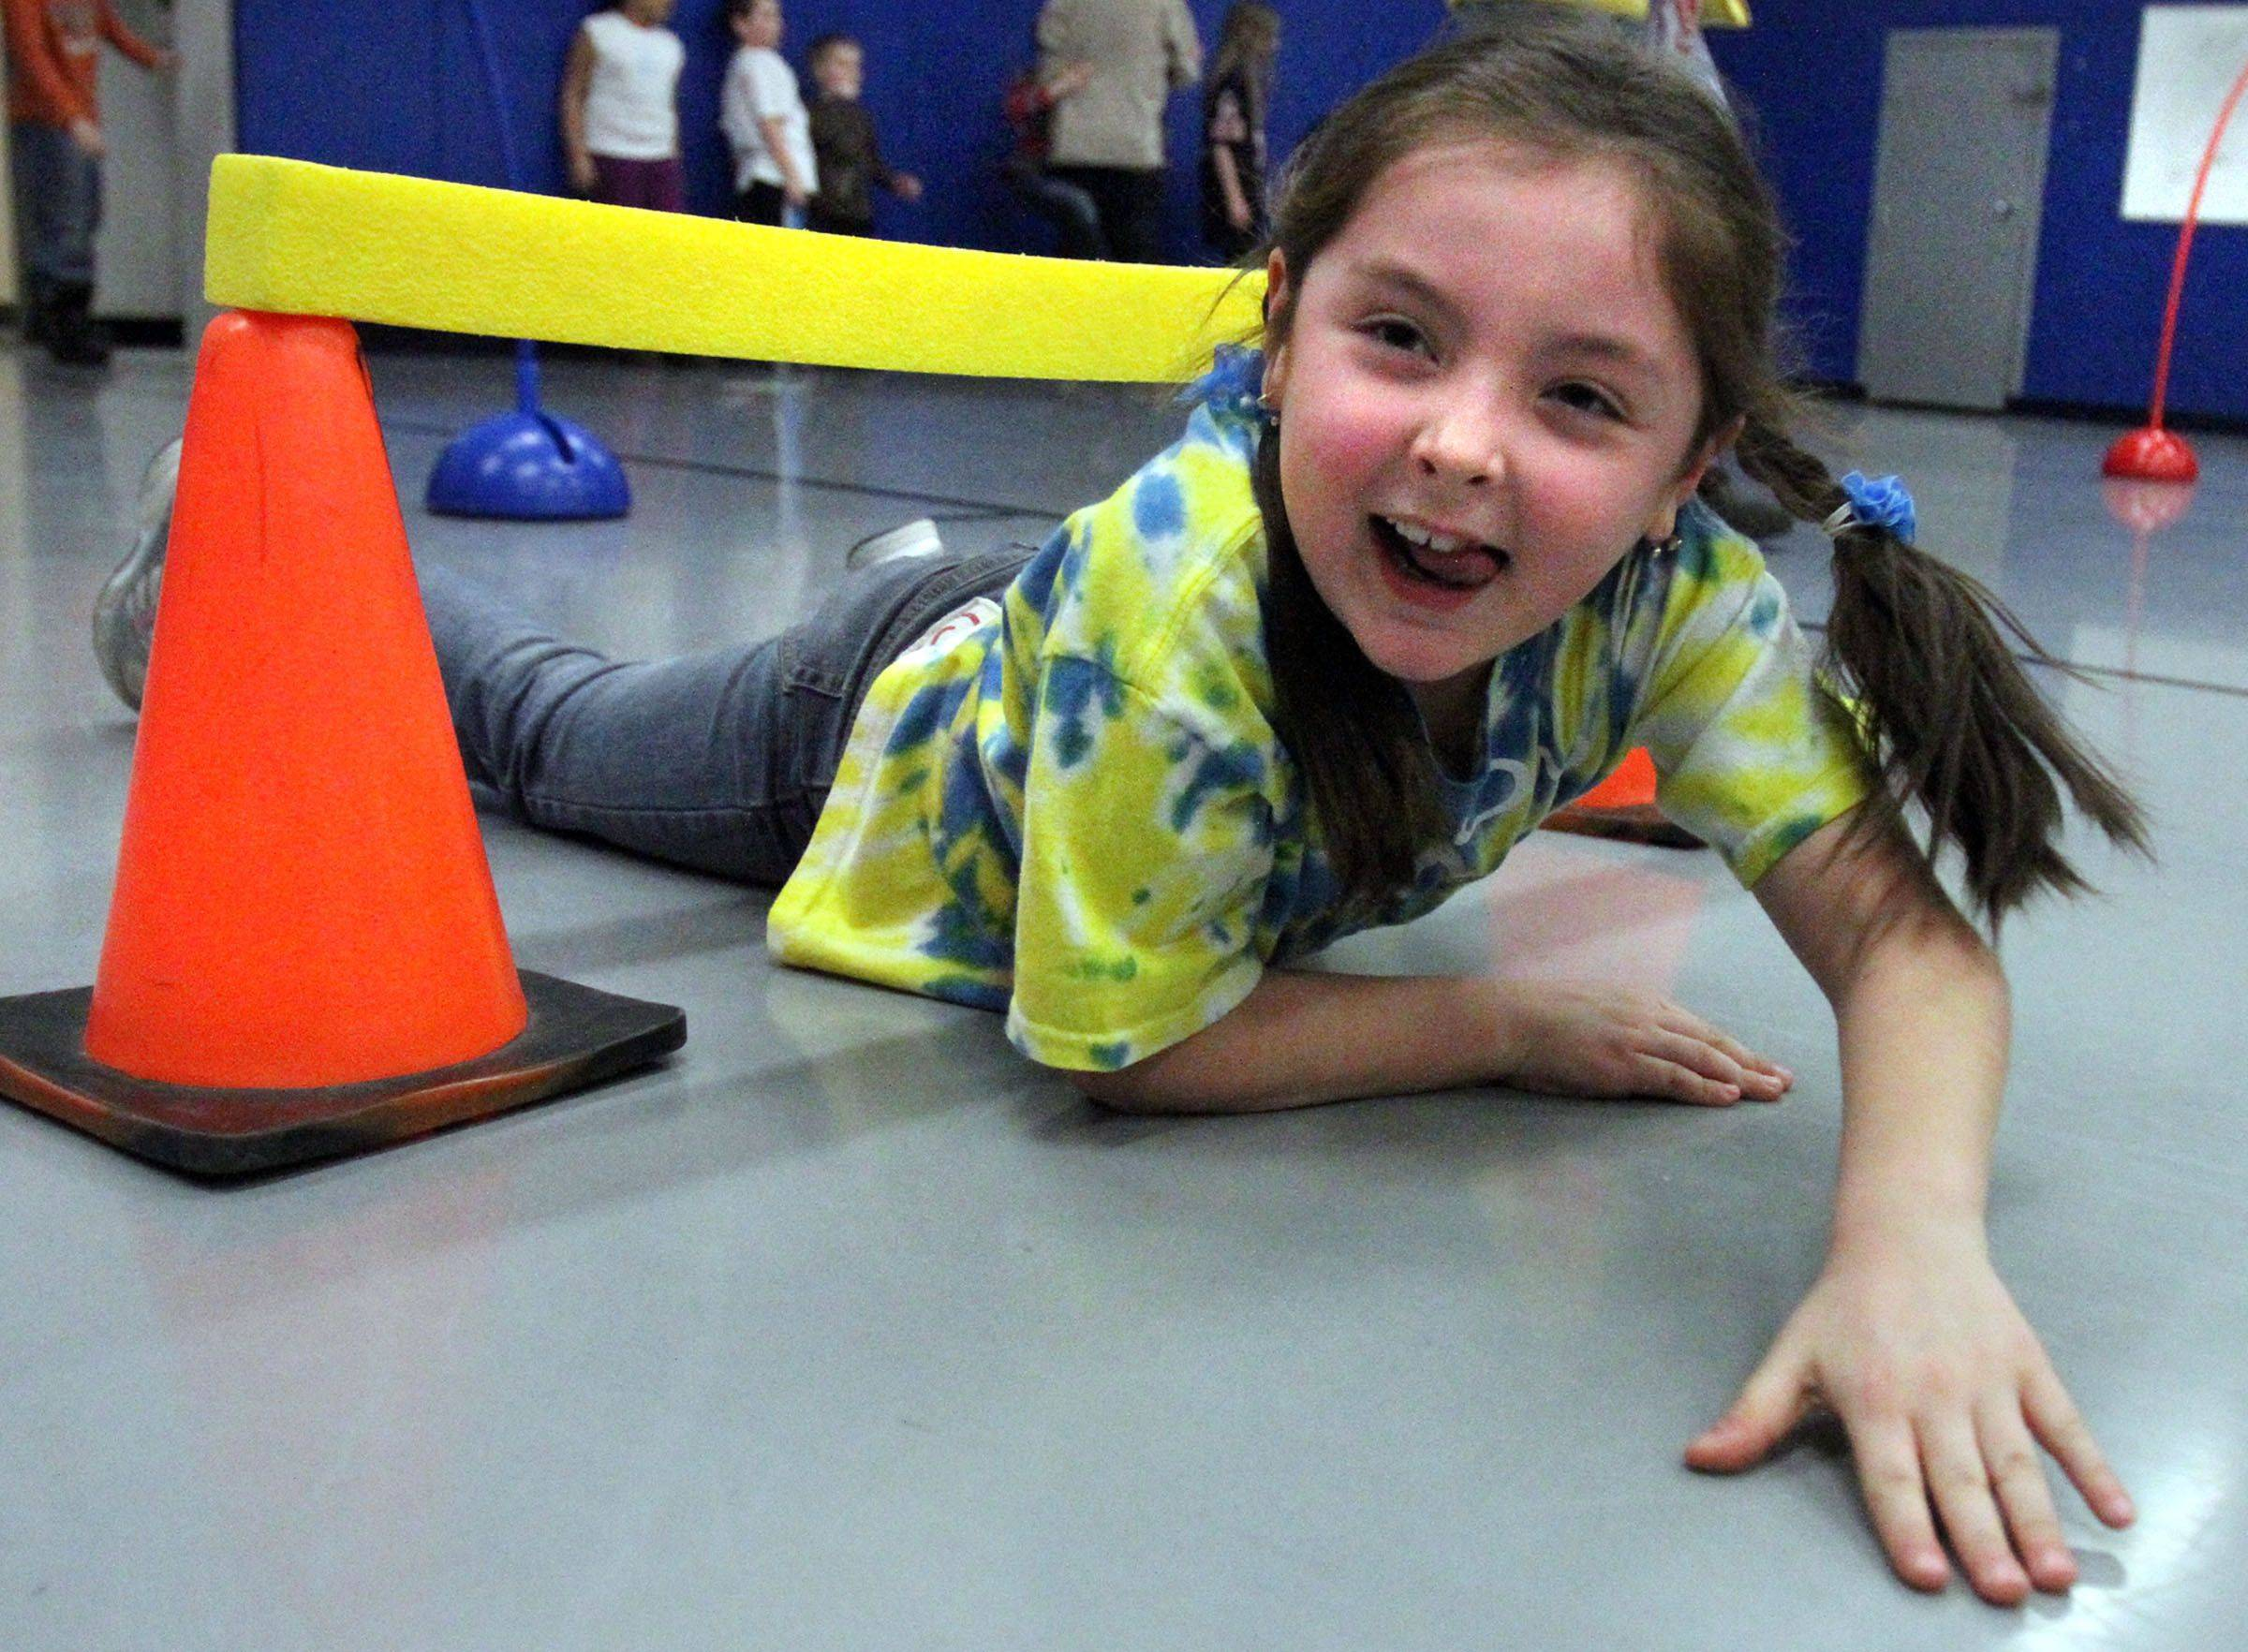 Avon School first grader Nathalia Johnson enjoys the exercise course as she slides under a foam bar on cones at at Grayslake District 46 wellness night in Round Lake Beach on Friday, February 25.